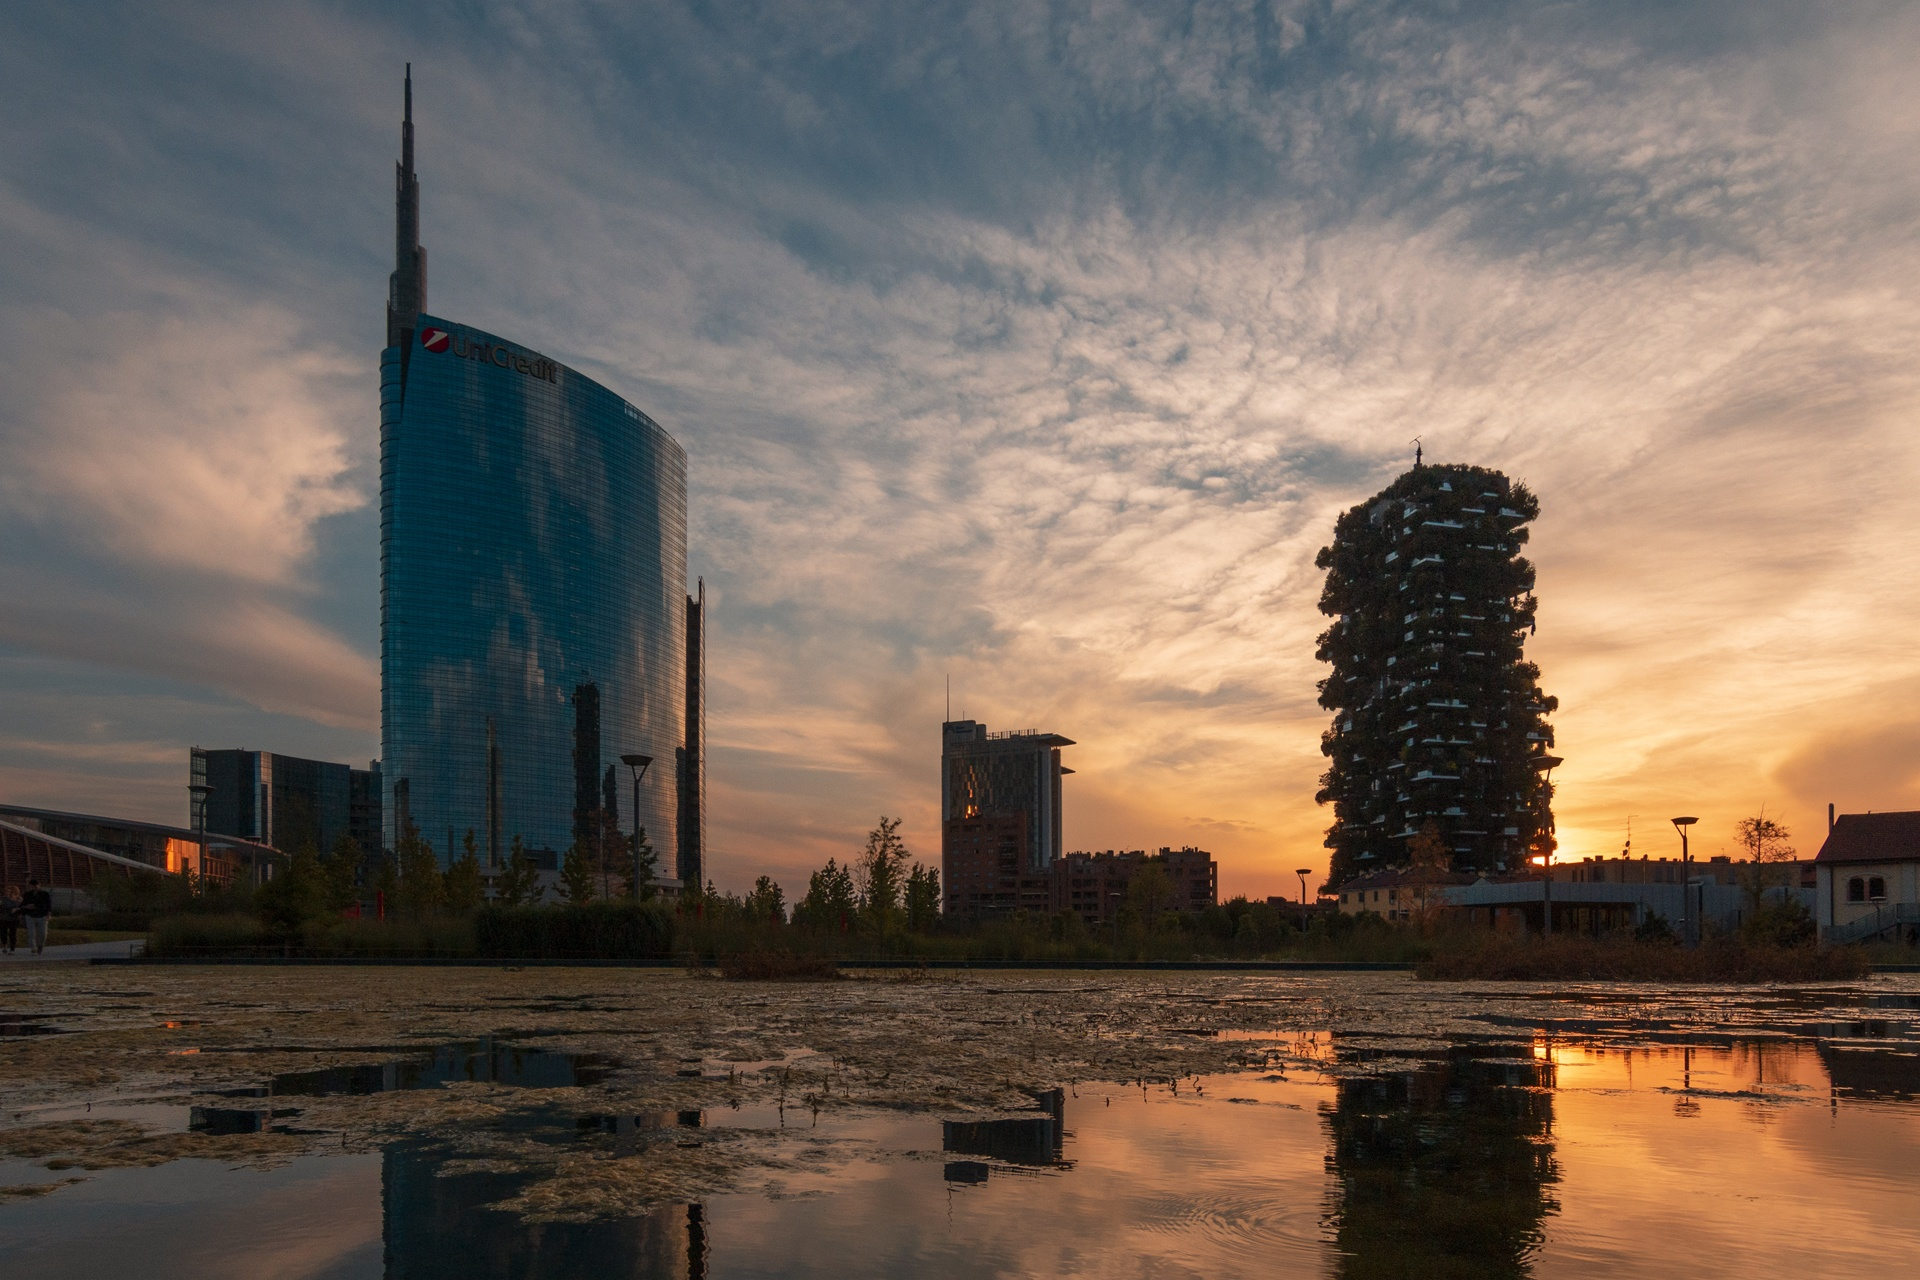 The golden hour in Milan at Porta Nuova